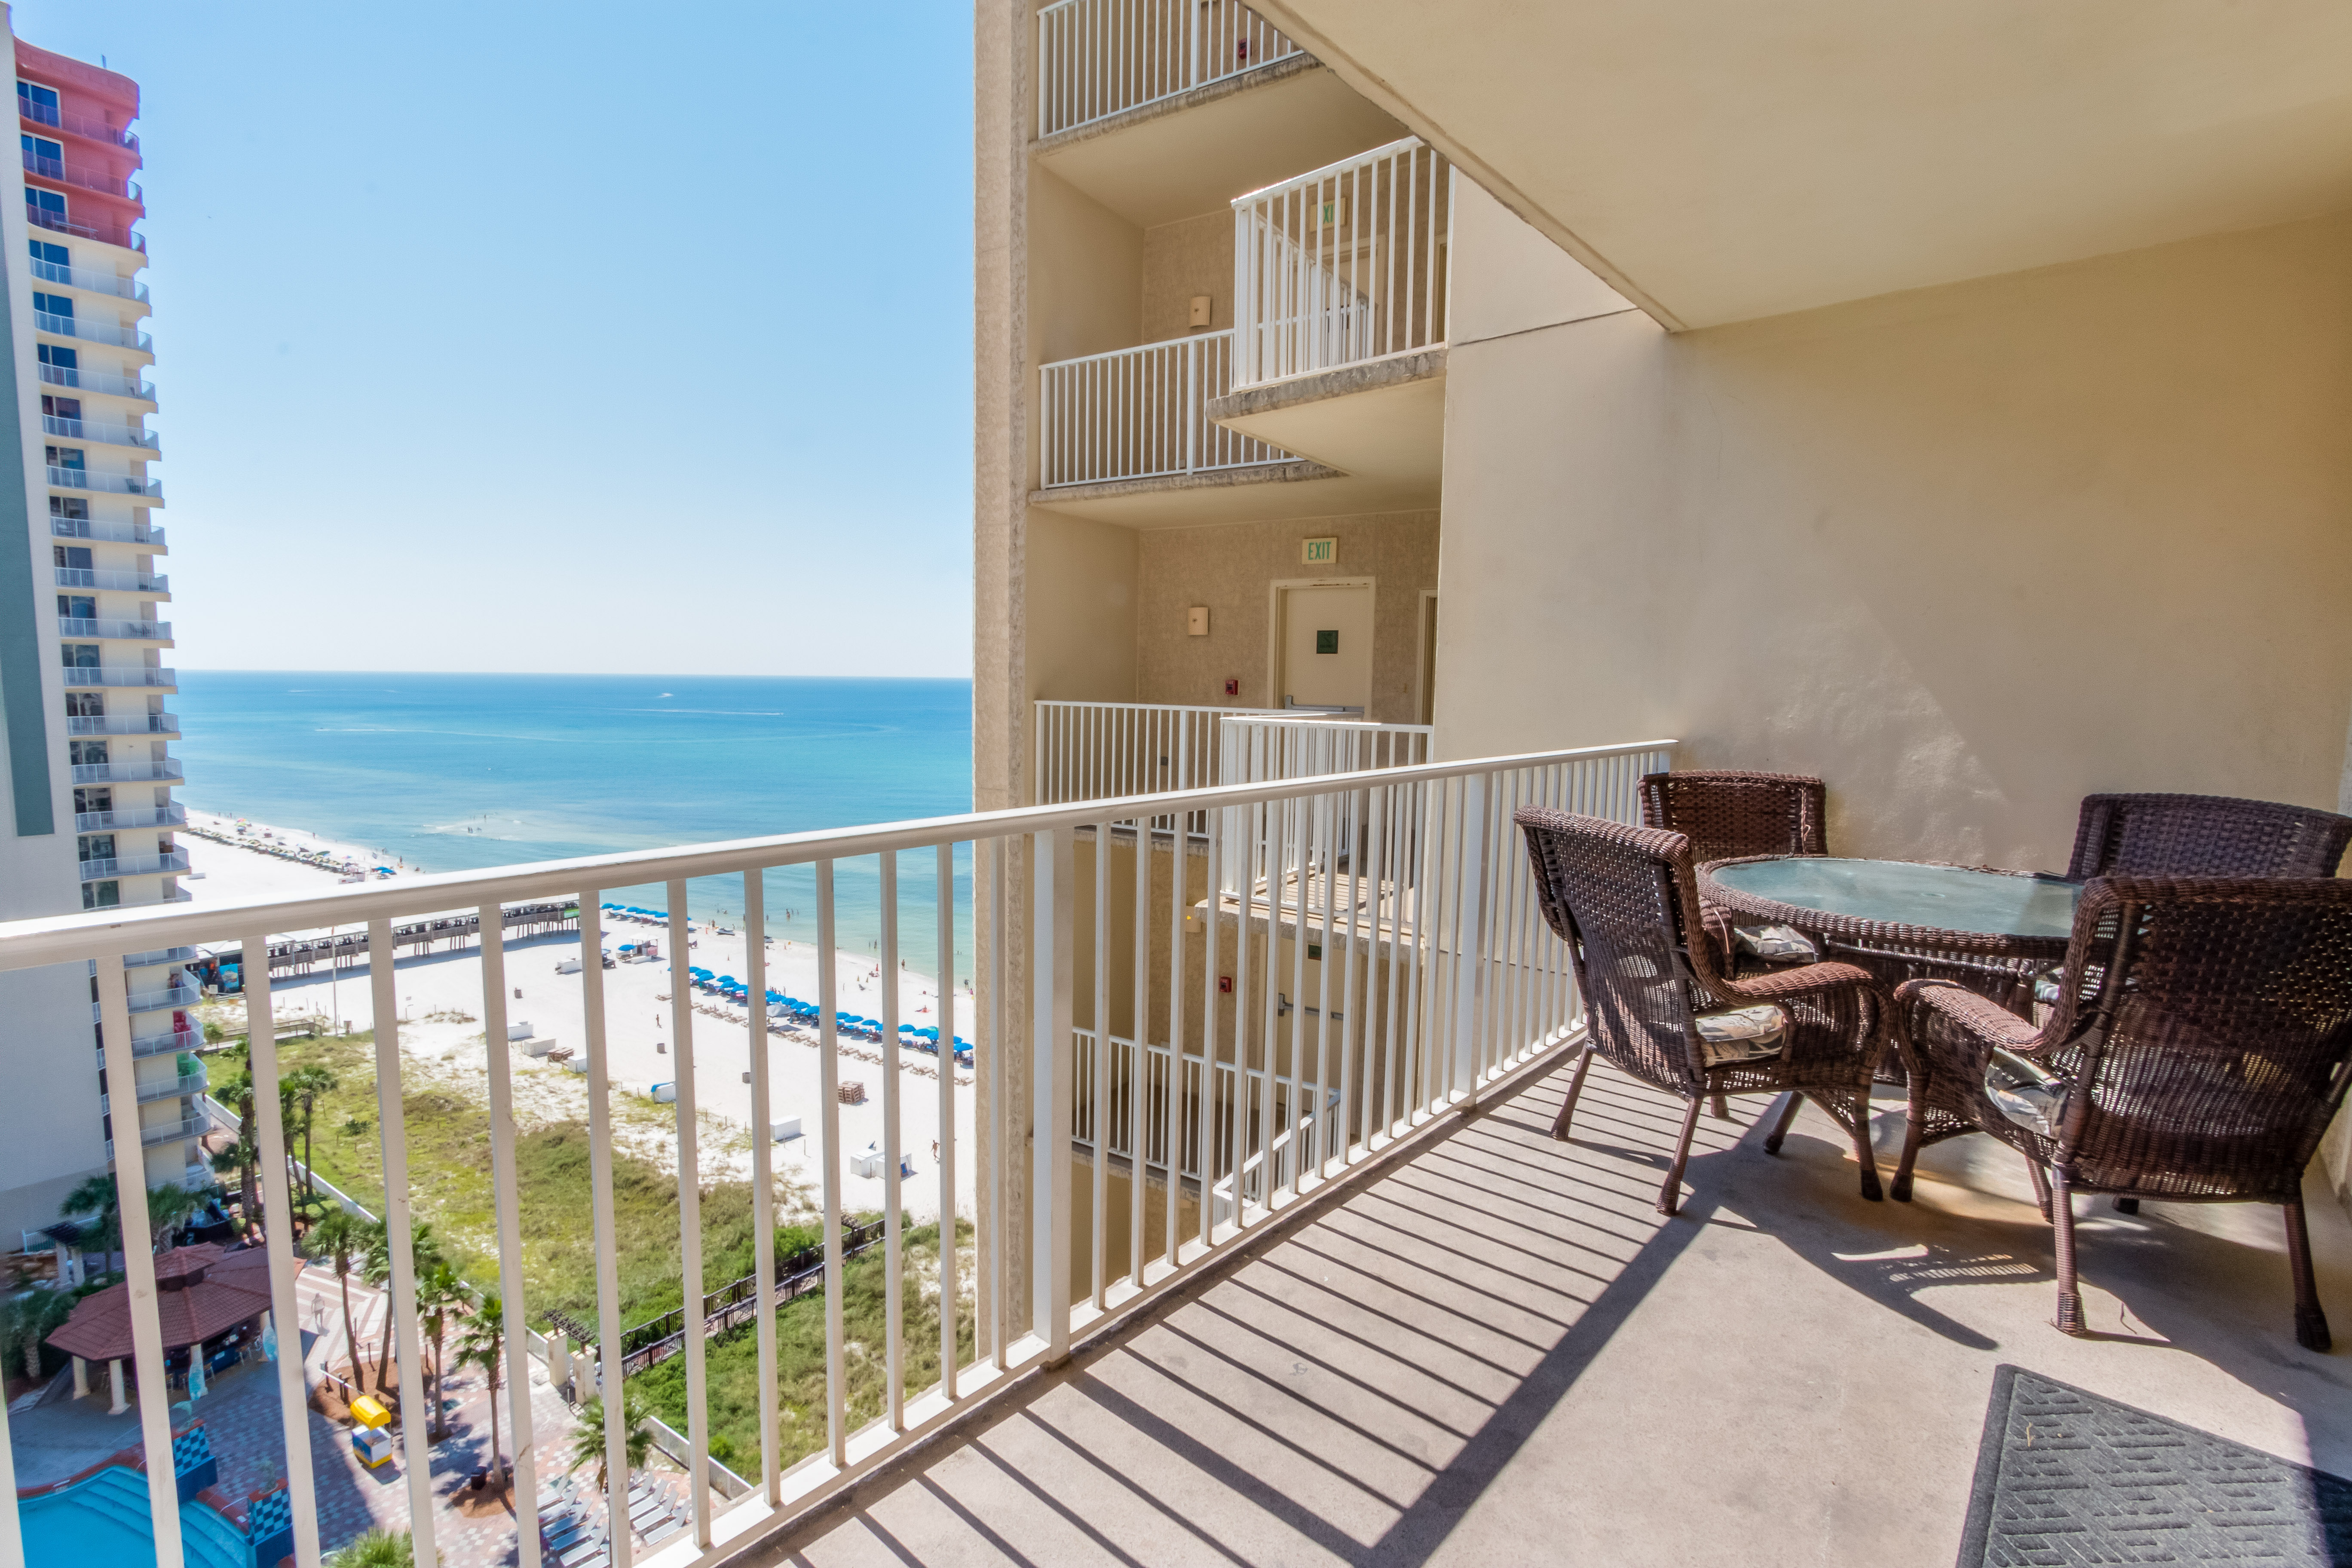 Shores Of Panama Owner Condo 1204 Panama City Beach Florida Book Directly From Owner At